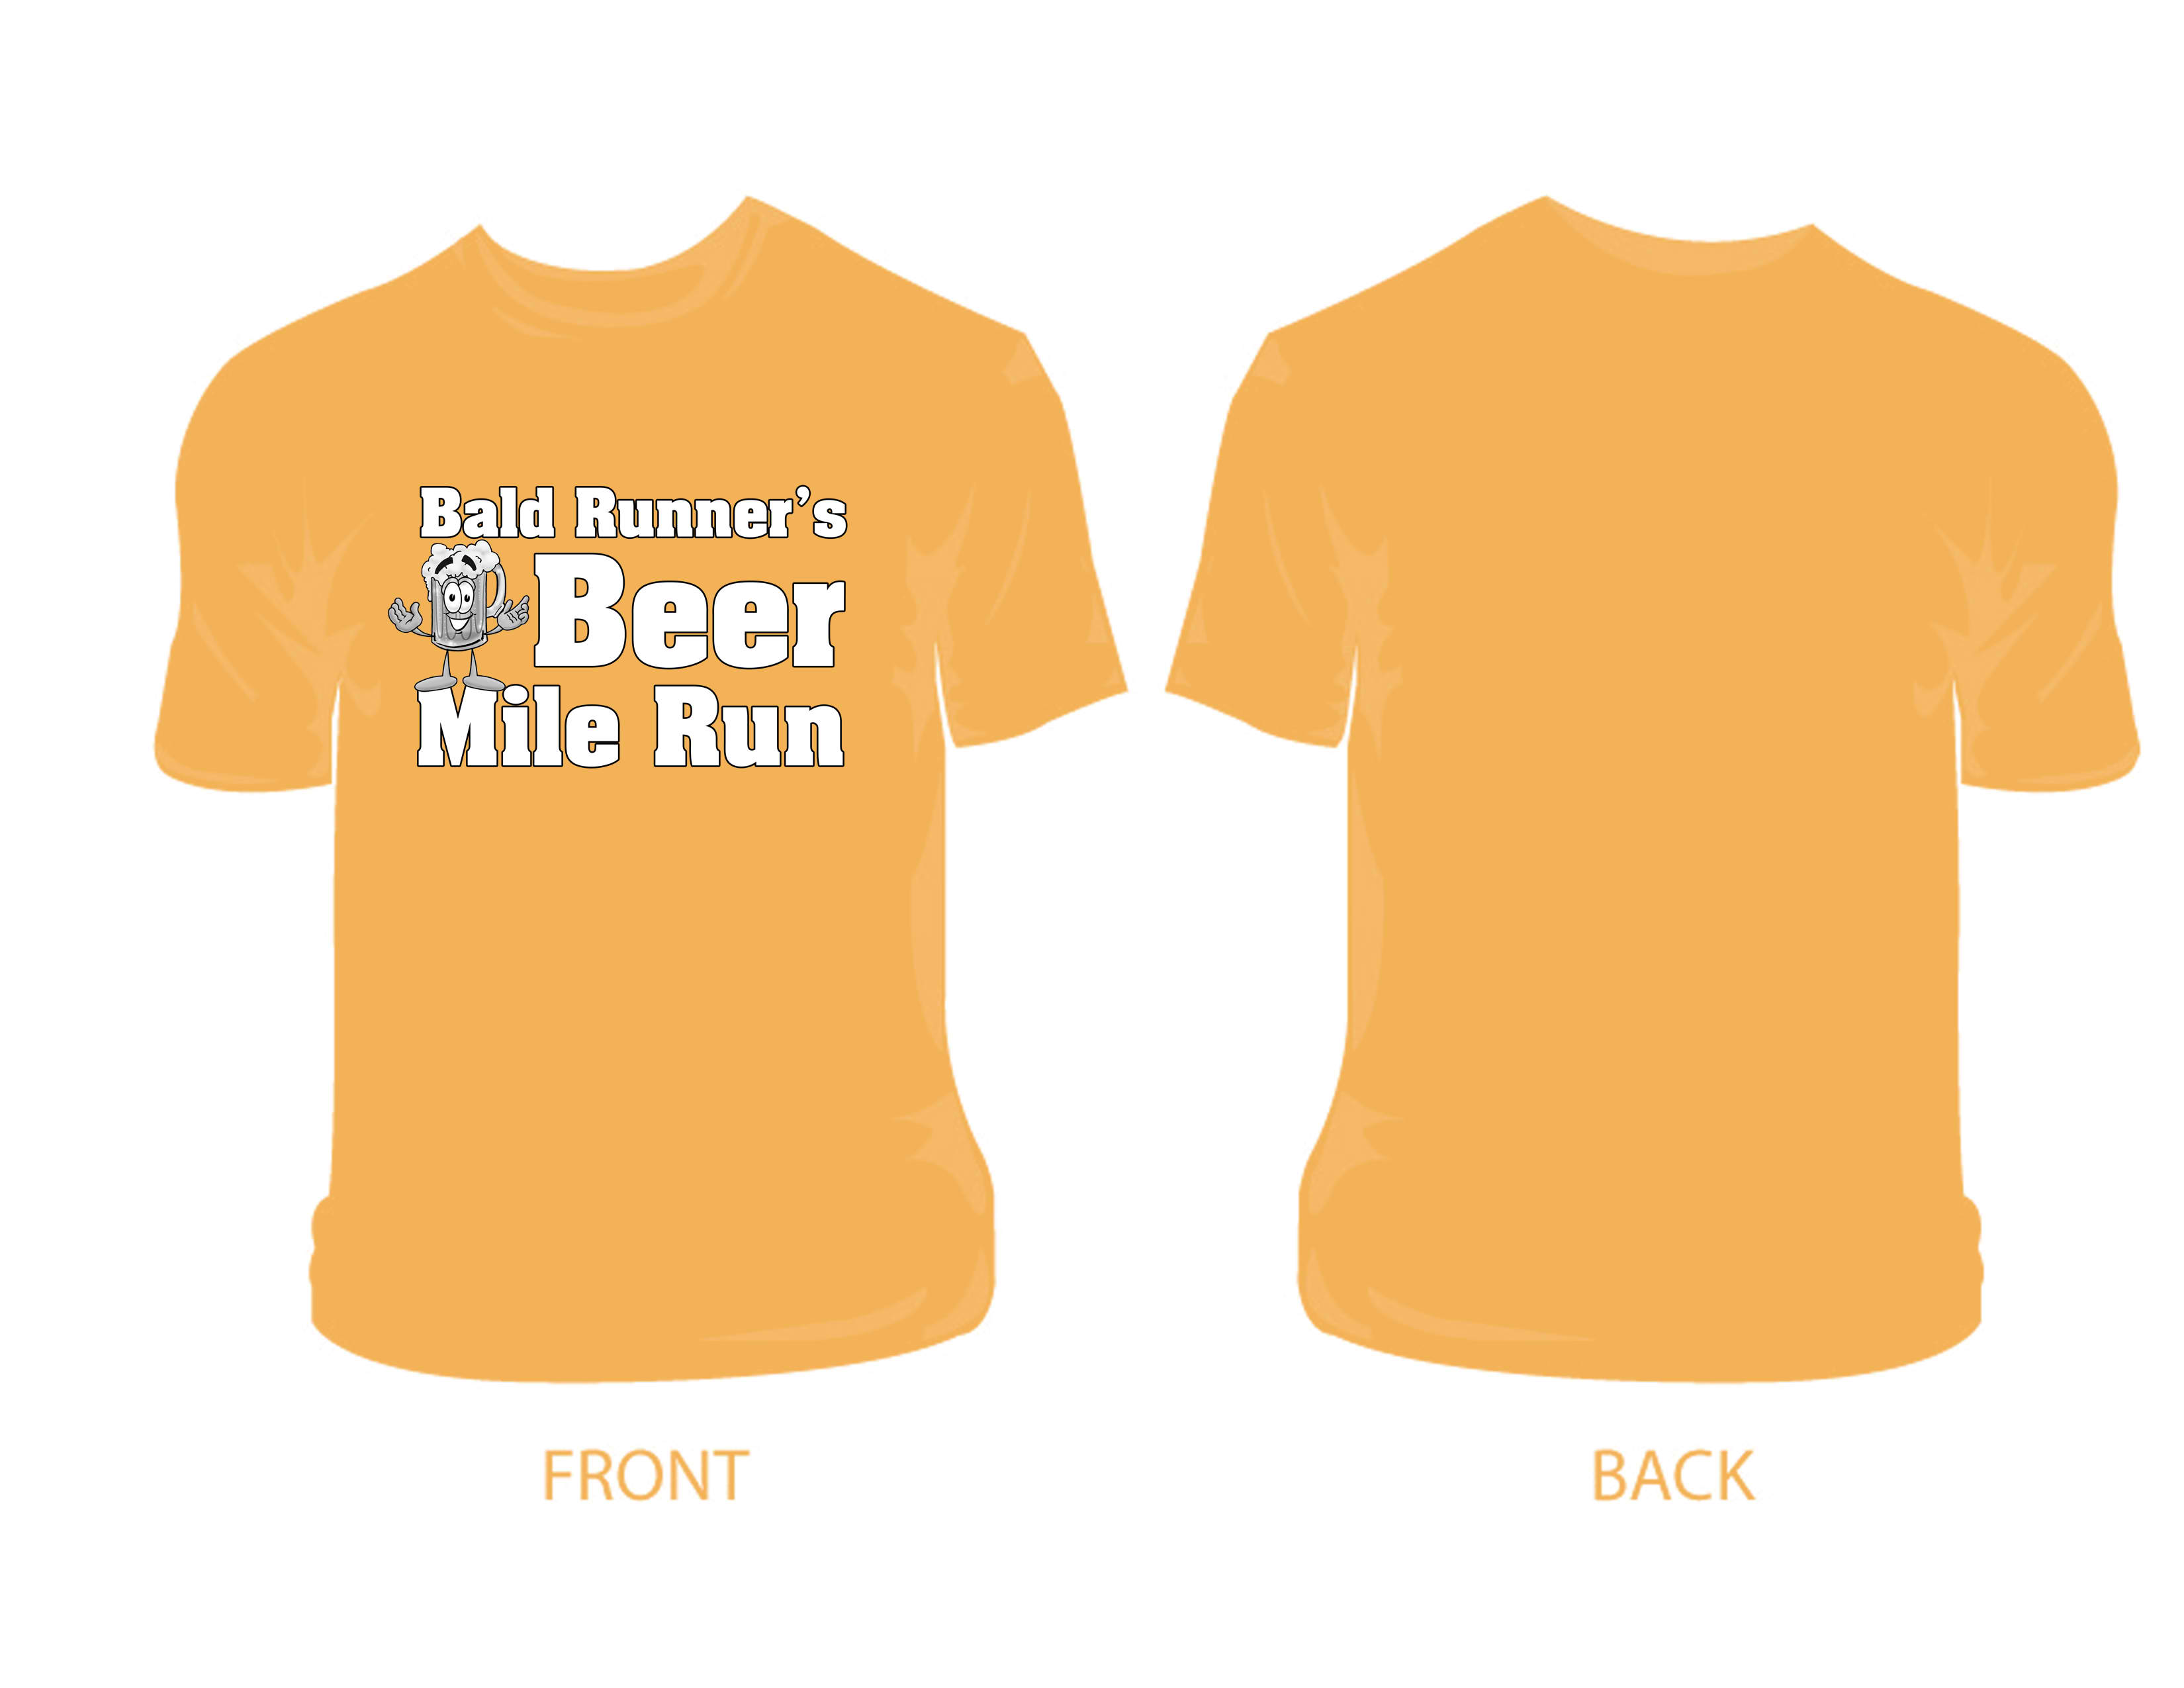 Design your own t-shirt front and back - Commemorative T Shirts Will Be Available For Sale P 300 00 Each The Word Finisher And Date Of The Event Will Be Printed At The Back Of The Shirt